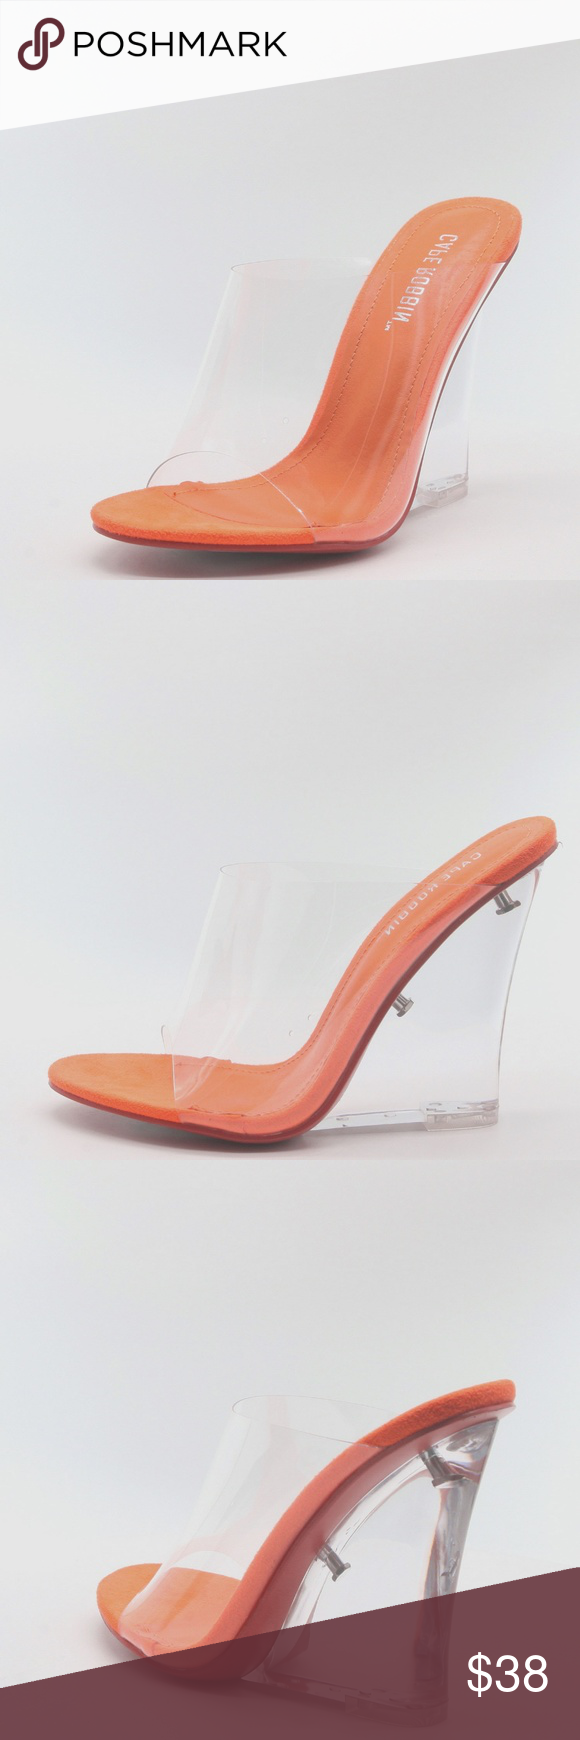 fcfb9f9fe7a NEW🔥 Orange Transparent Clear Wedge Heel Sandals We're not one to ...